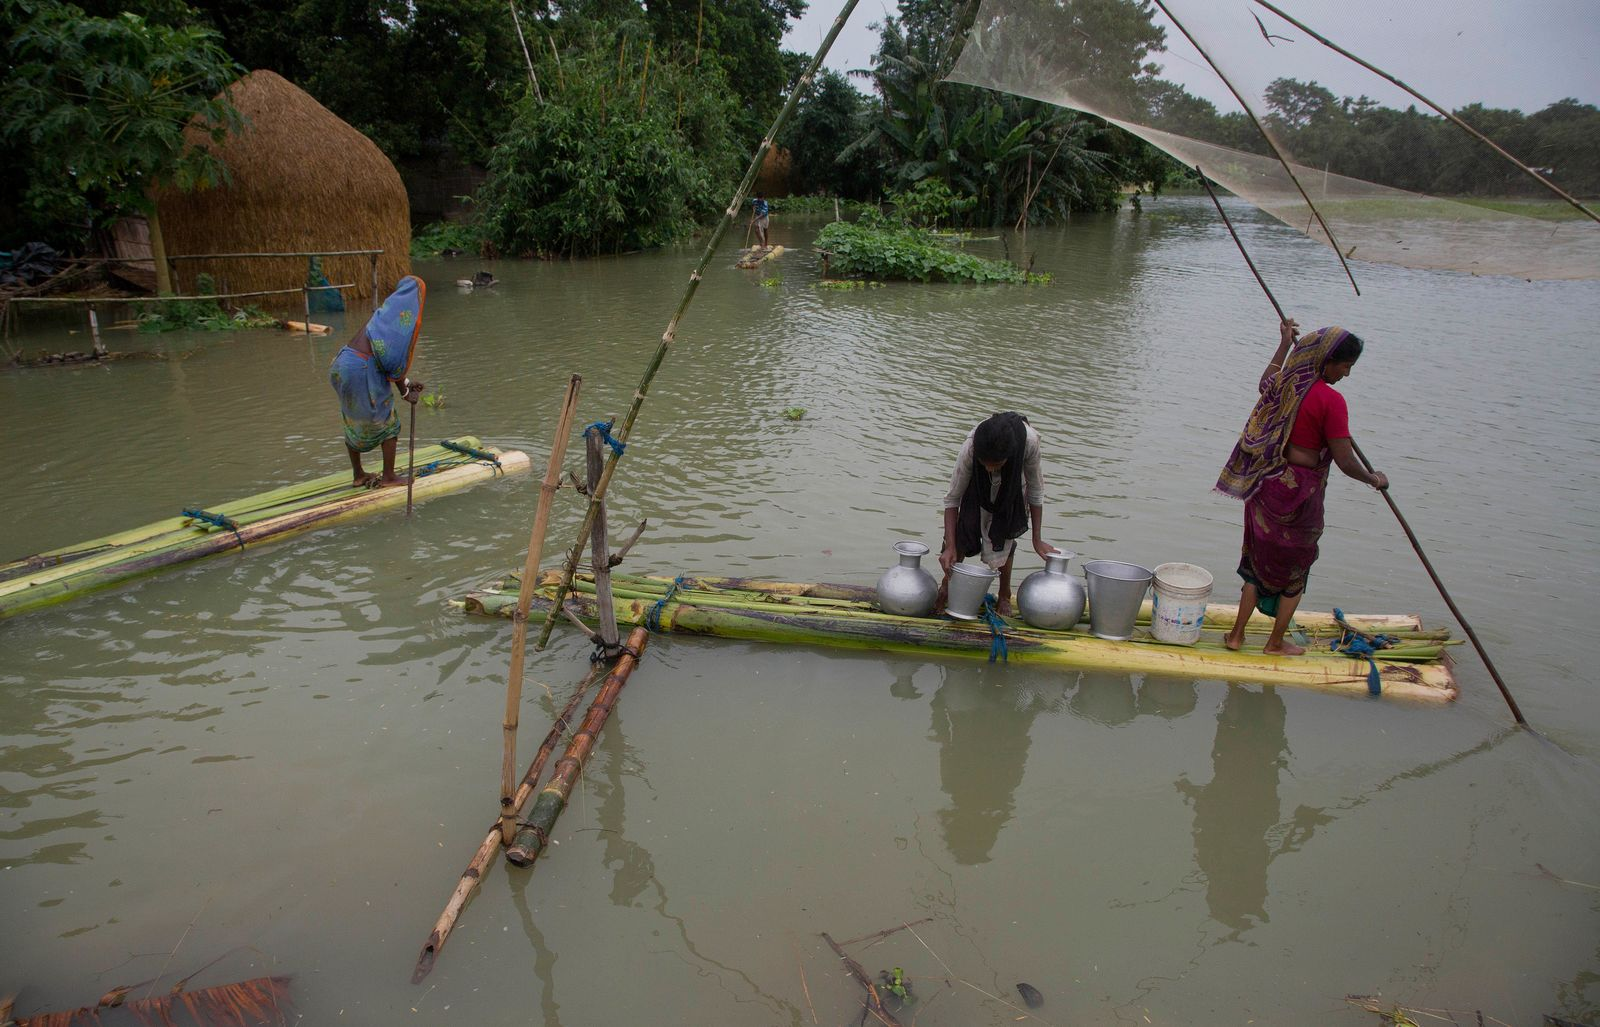 Indian flood affected women row makeshift banana rafts to collect drinking water in Pabhokathi village, east of Gauhati, Assam, India, Monday, July 15, 2019. (AP Photo/Anupam Nath)